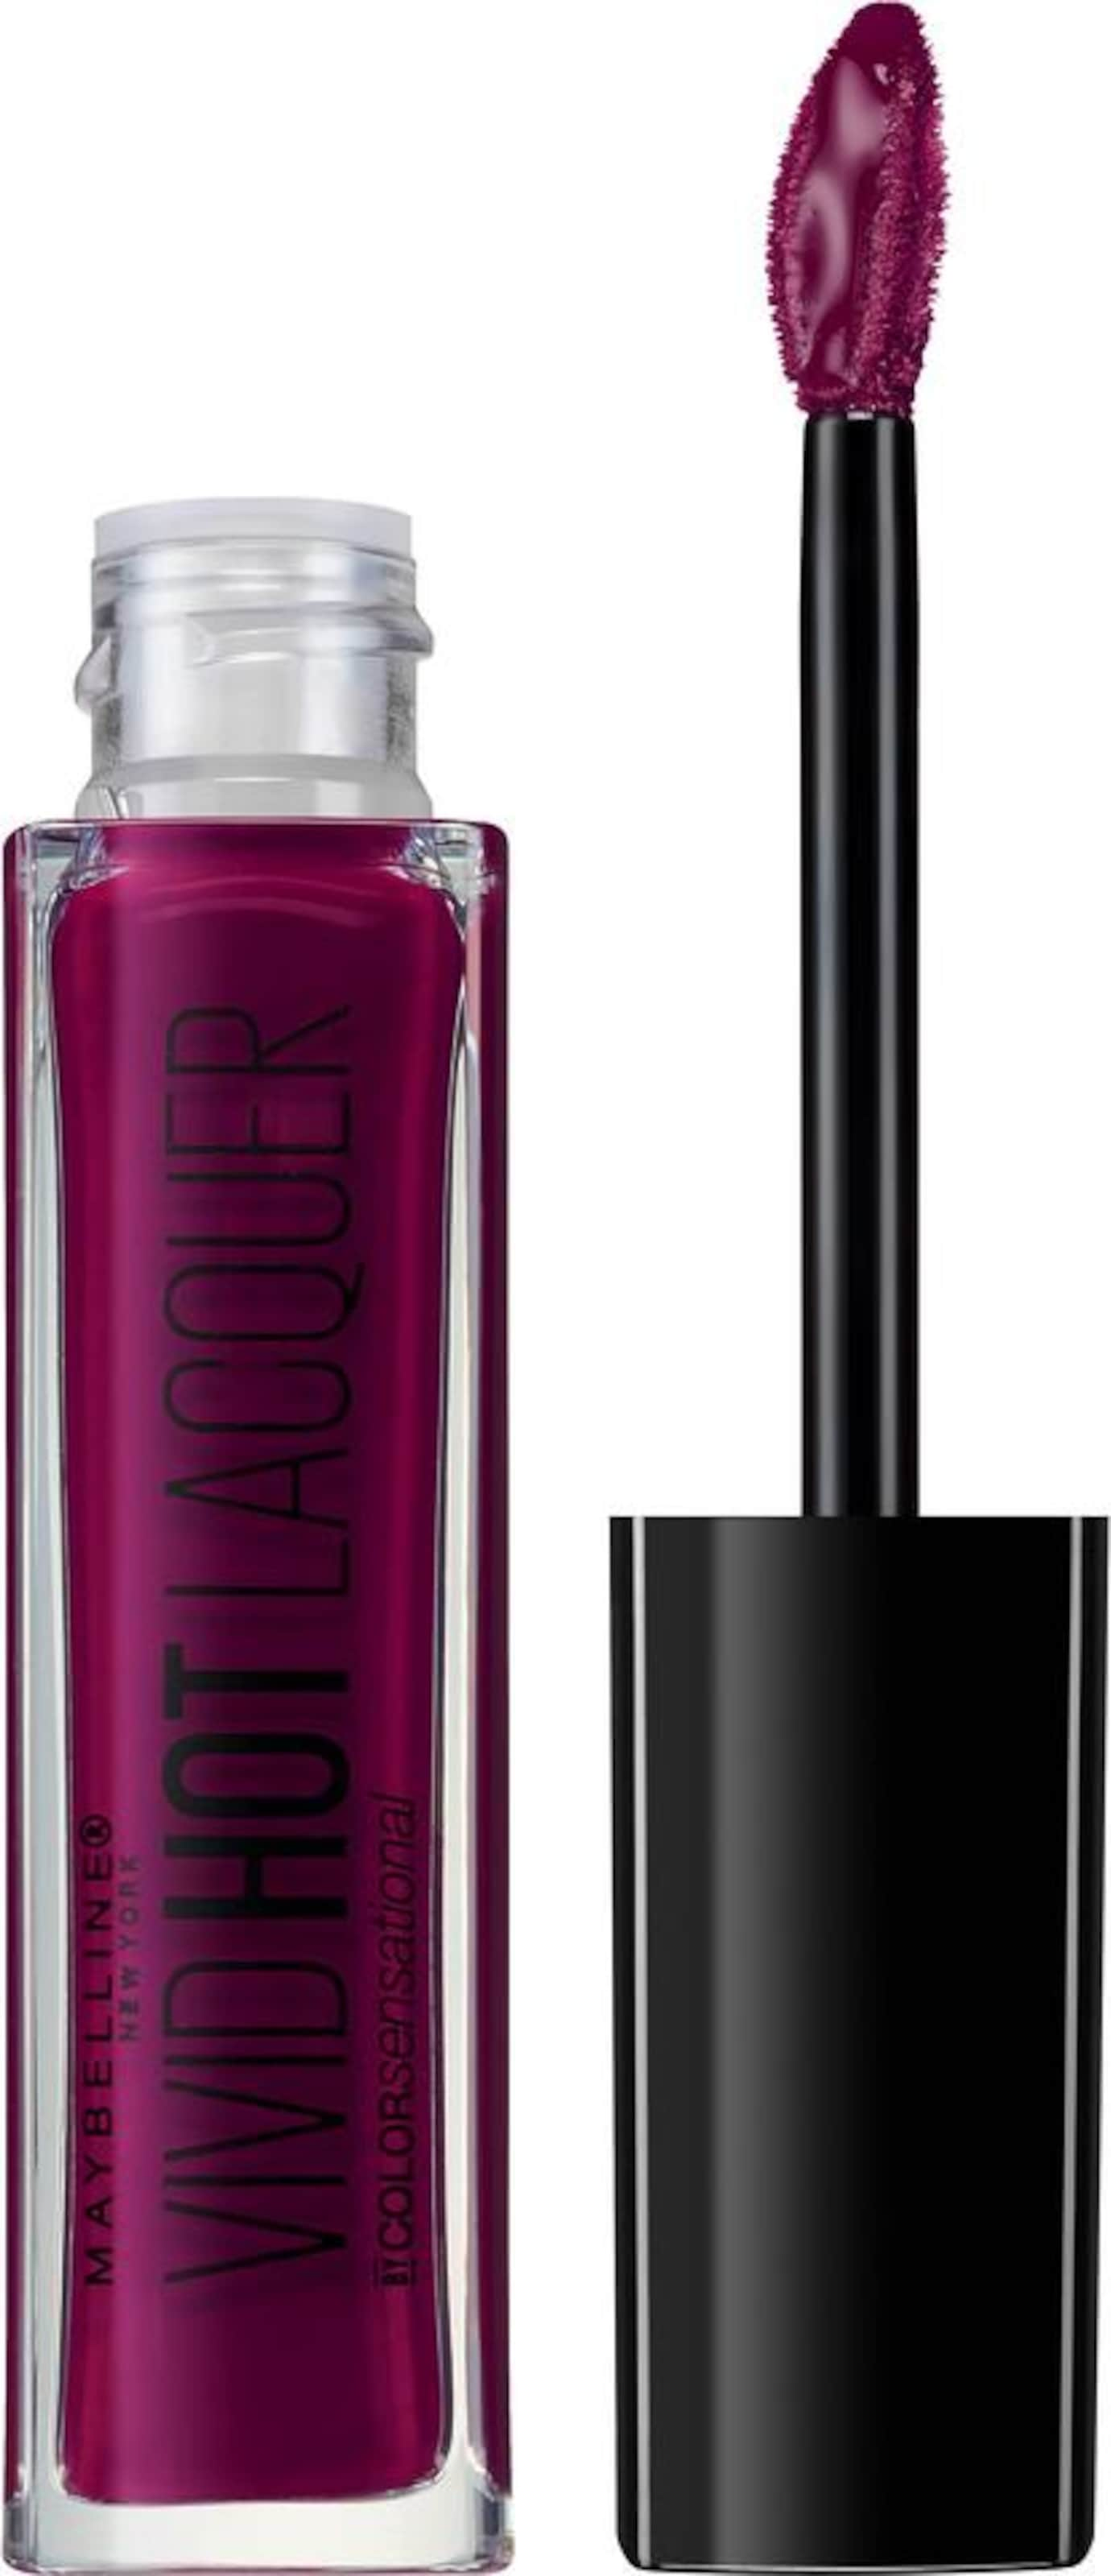 MAYBELLINE New York 'Color Sensational Vivid Hot Laquer Lippenstift', Lippenstift